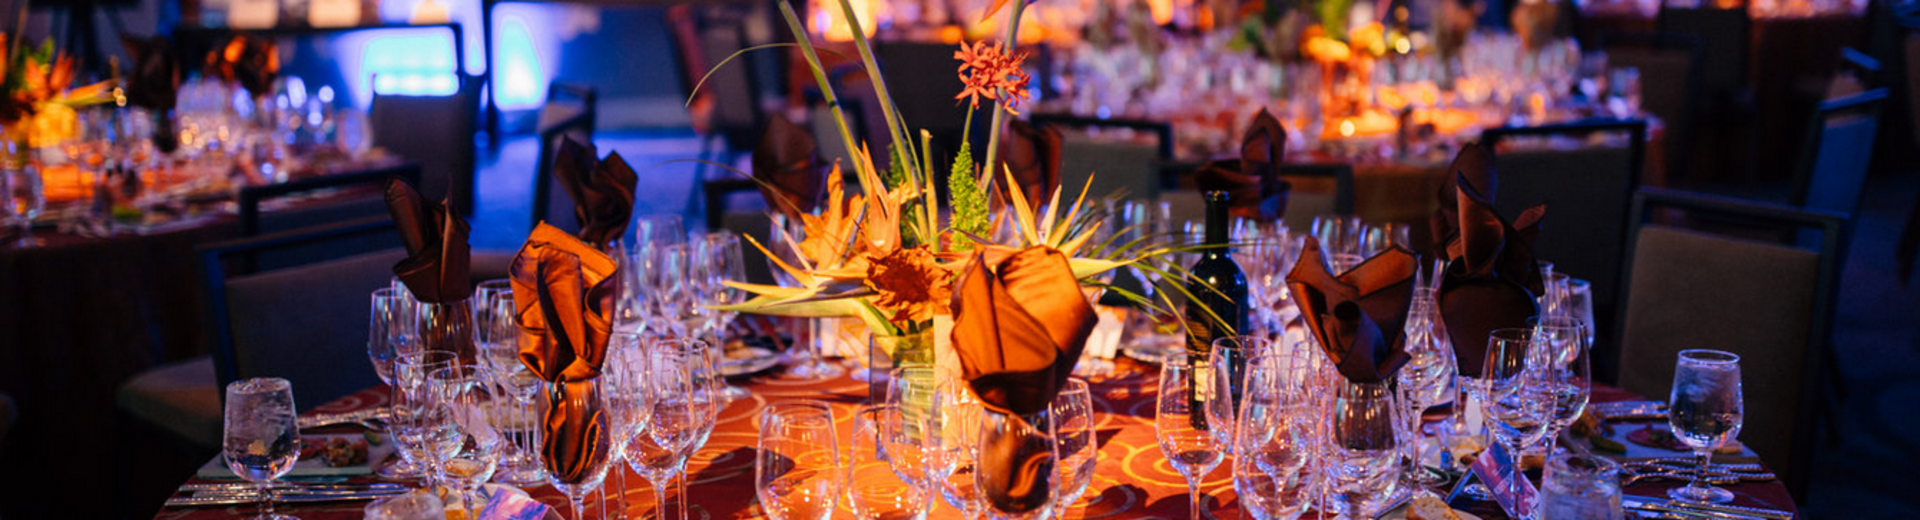 Events Catering and Services in Hershey & Harrisburg, PA